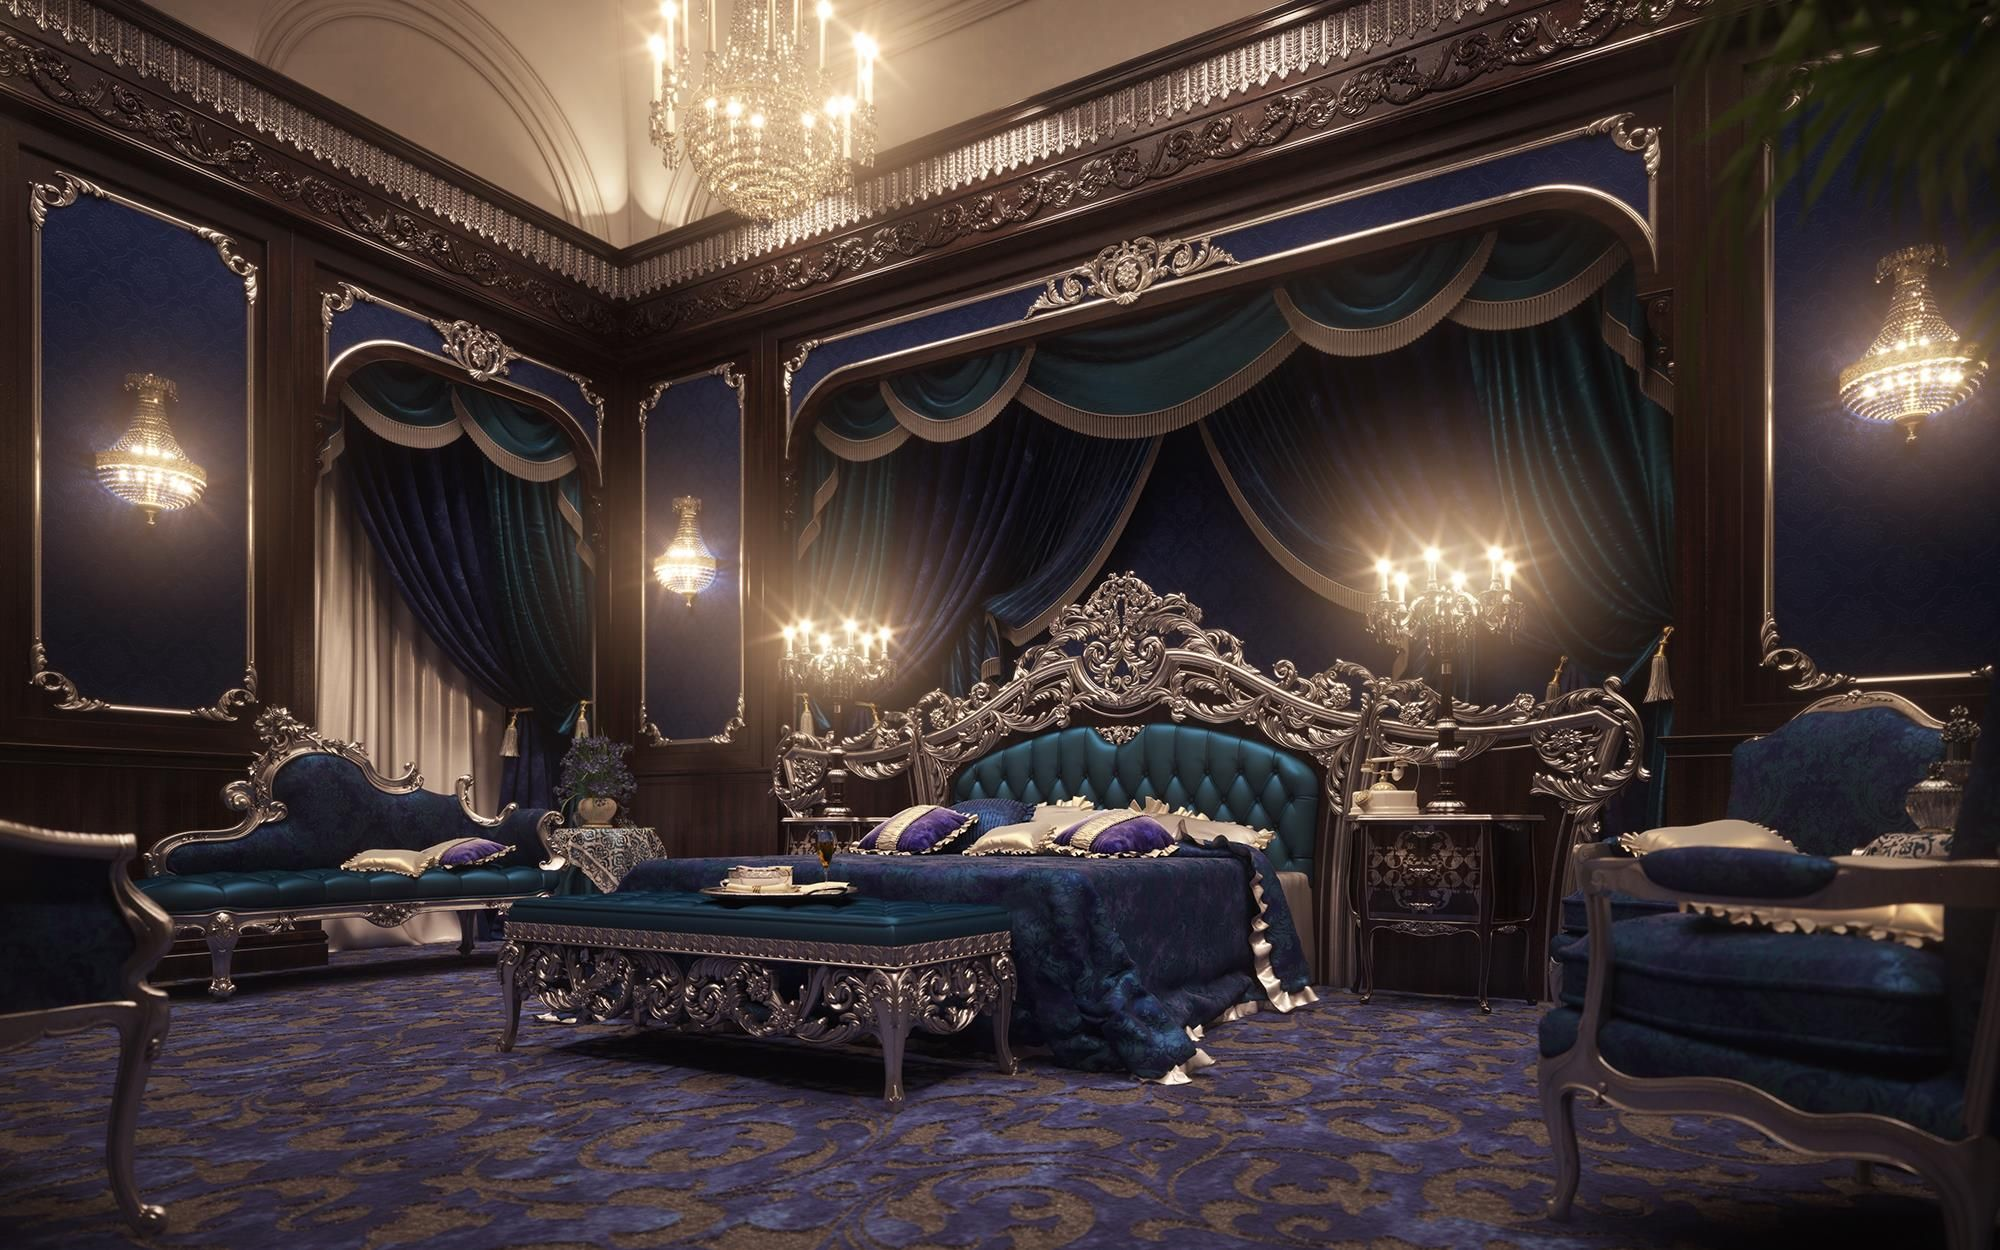 French Inspired Bedroom Decor, Royal European Luxury Bedroom .